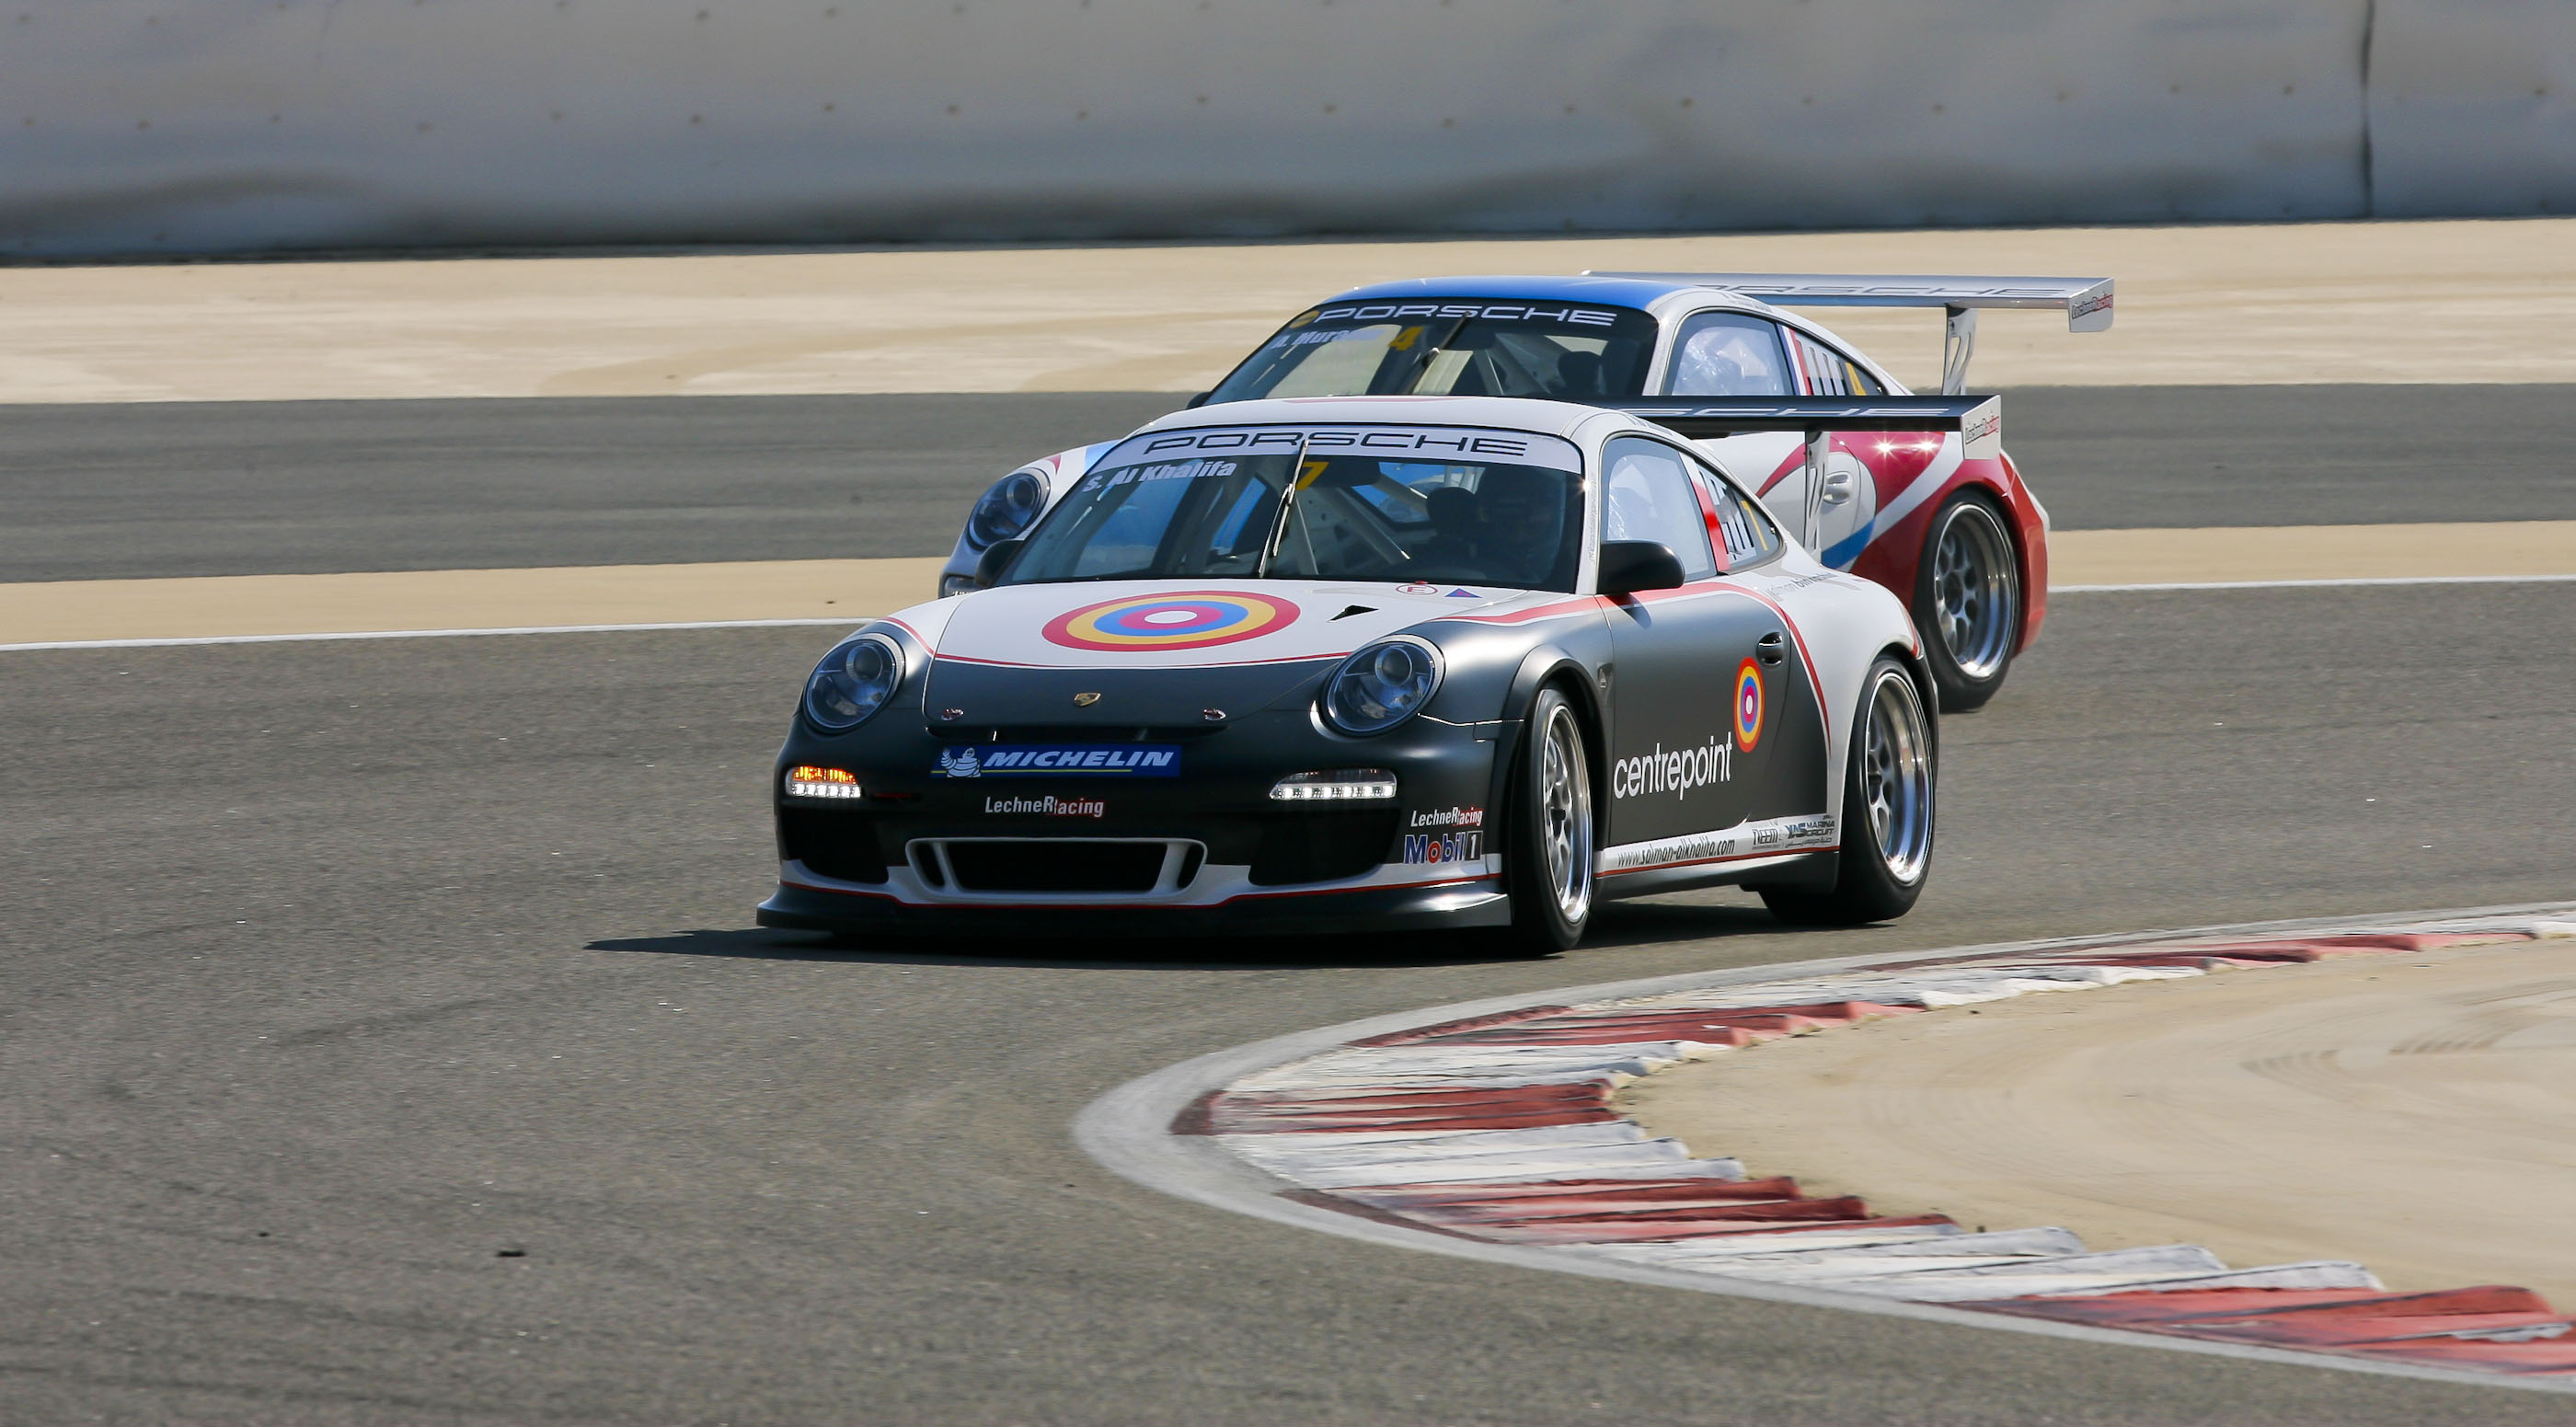 Porsche ME: Bahraini Sheikh Salman bin Rashid extends lead in the championship with a dramatic Porsche GT3 Cup victory in Saudi